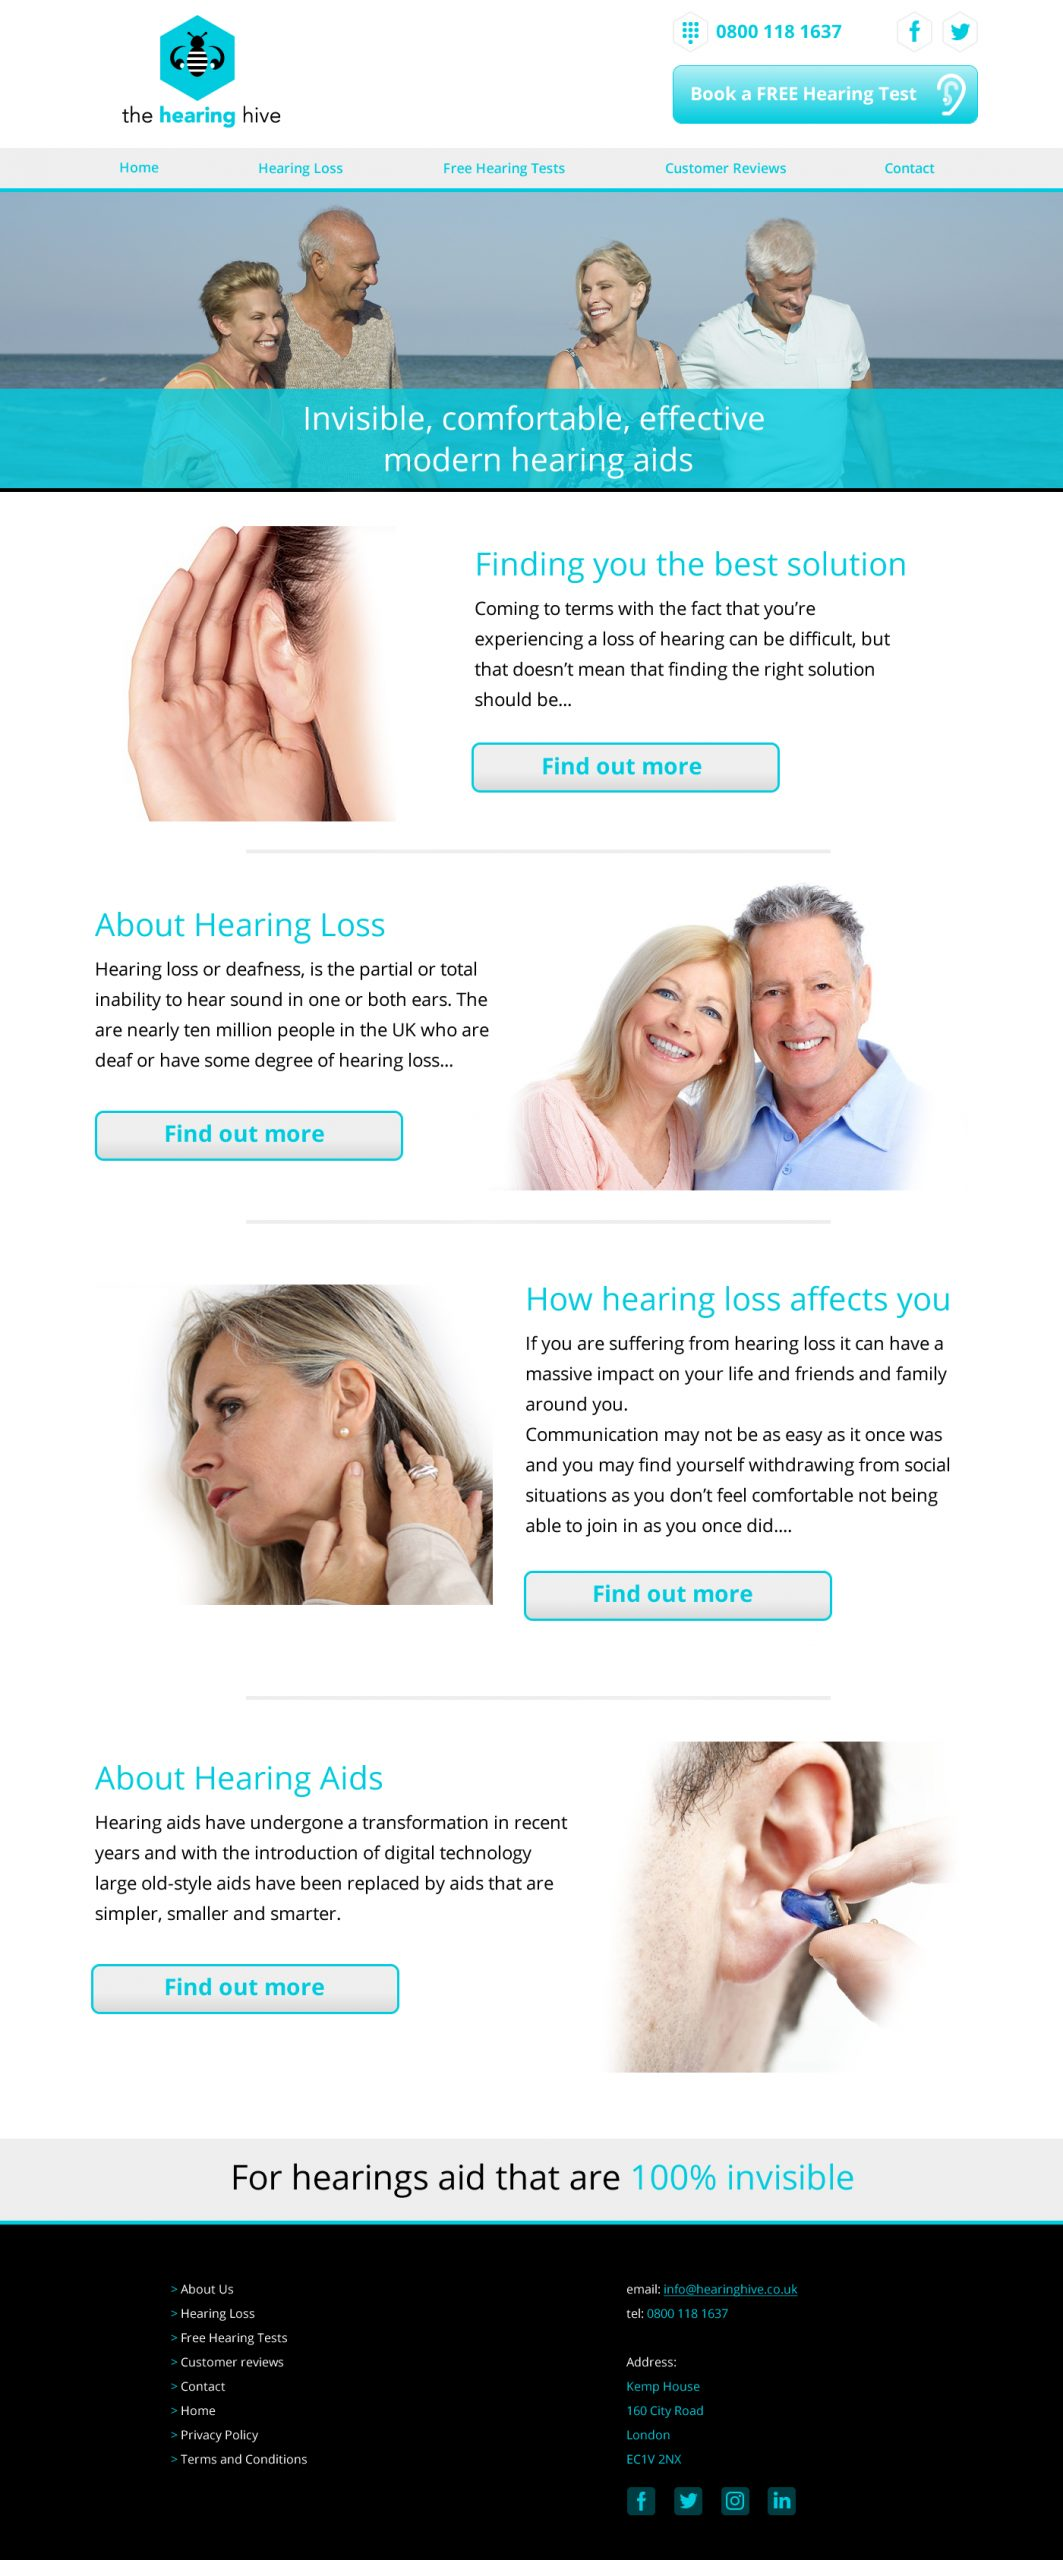 The Hearing Hive website home page